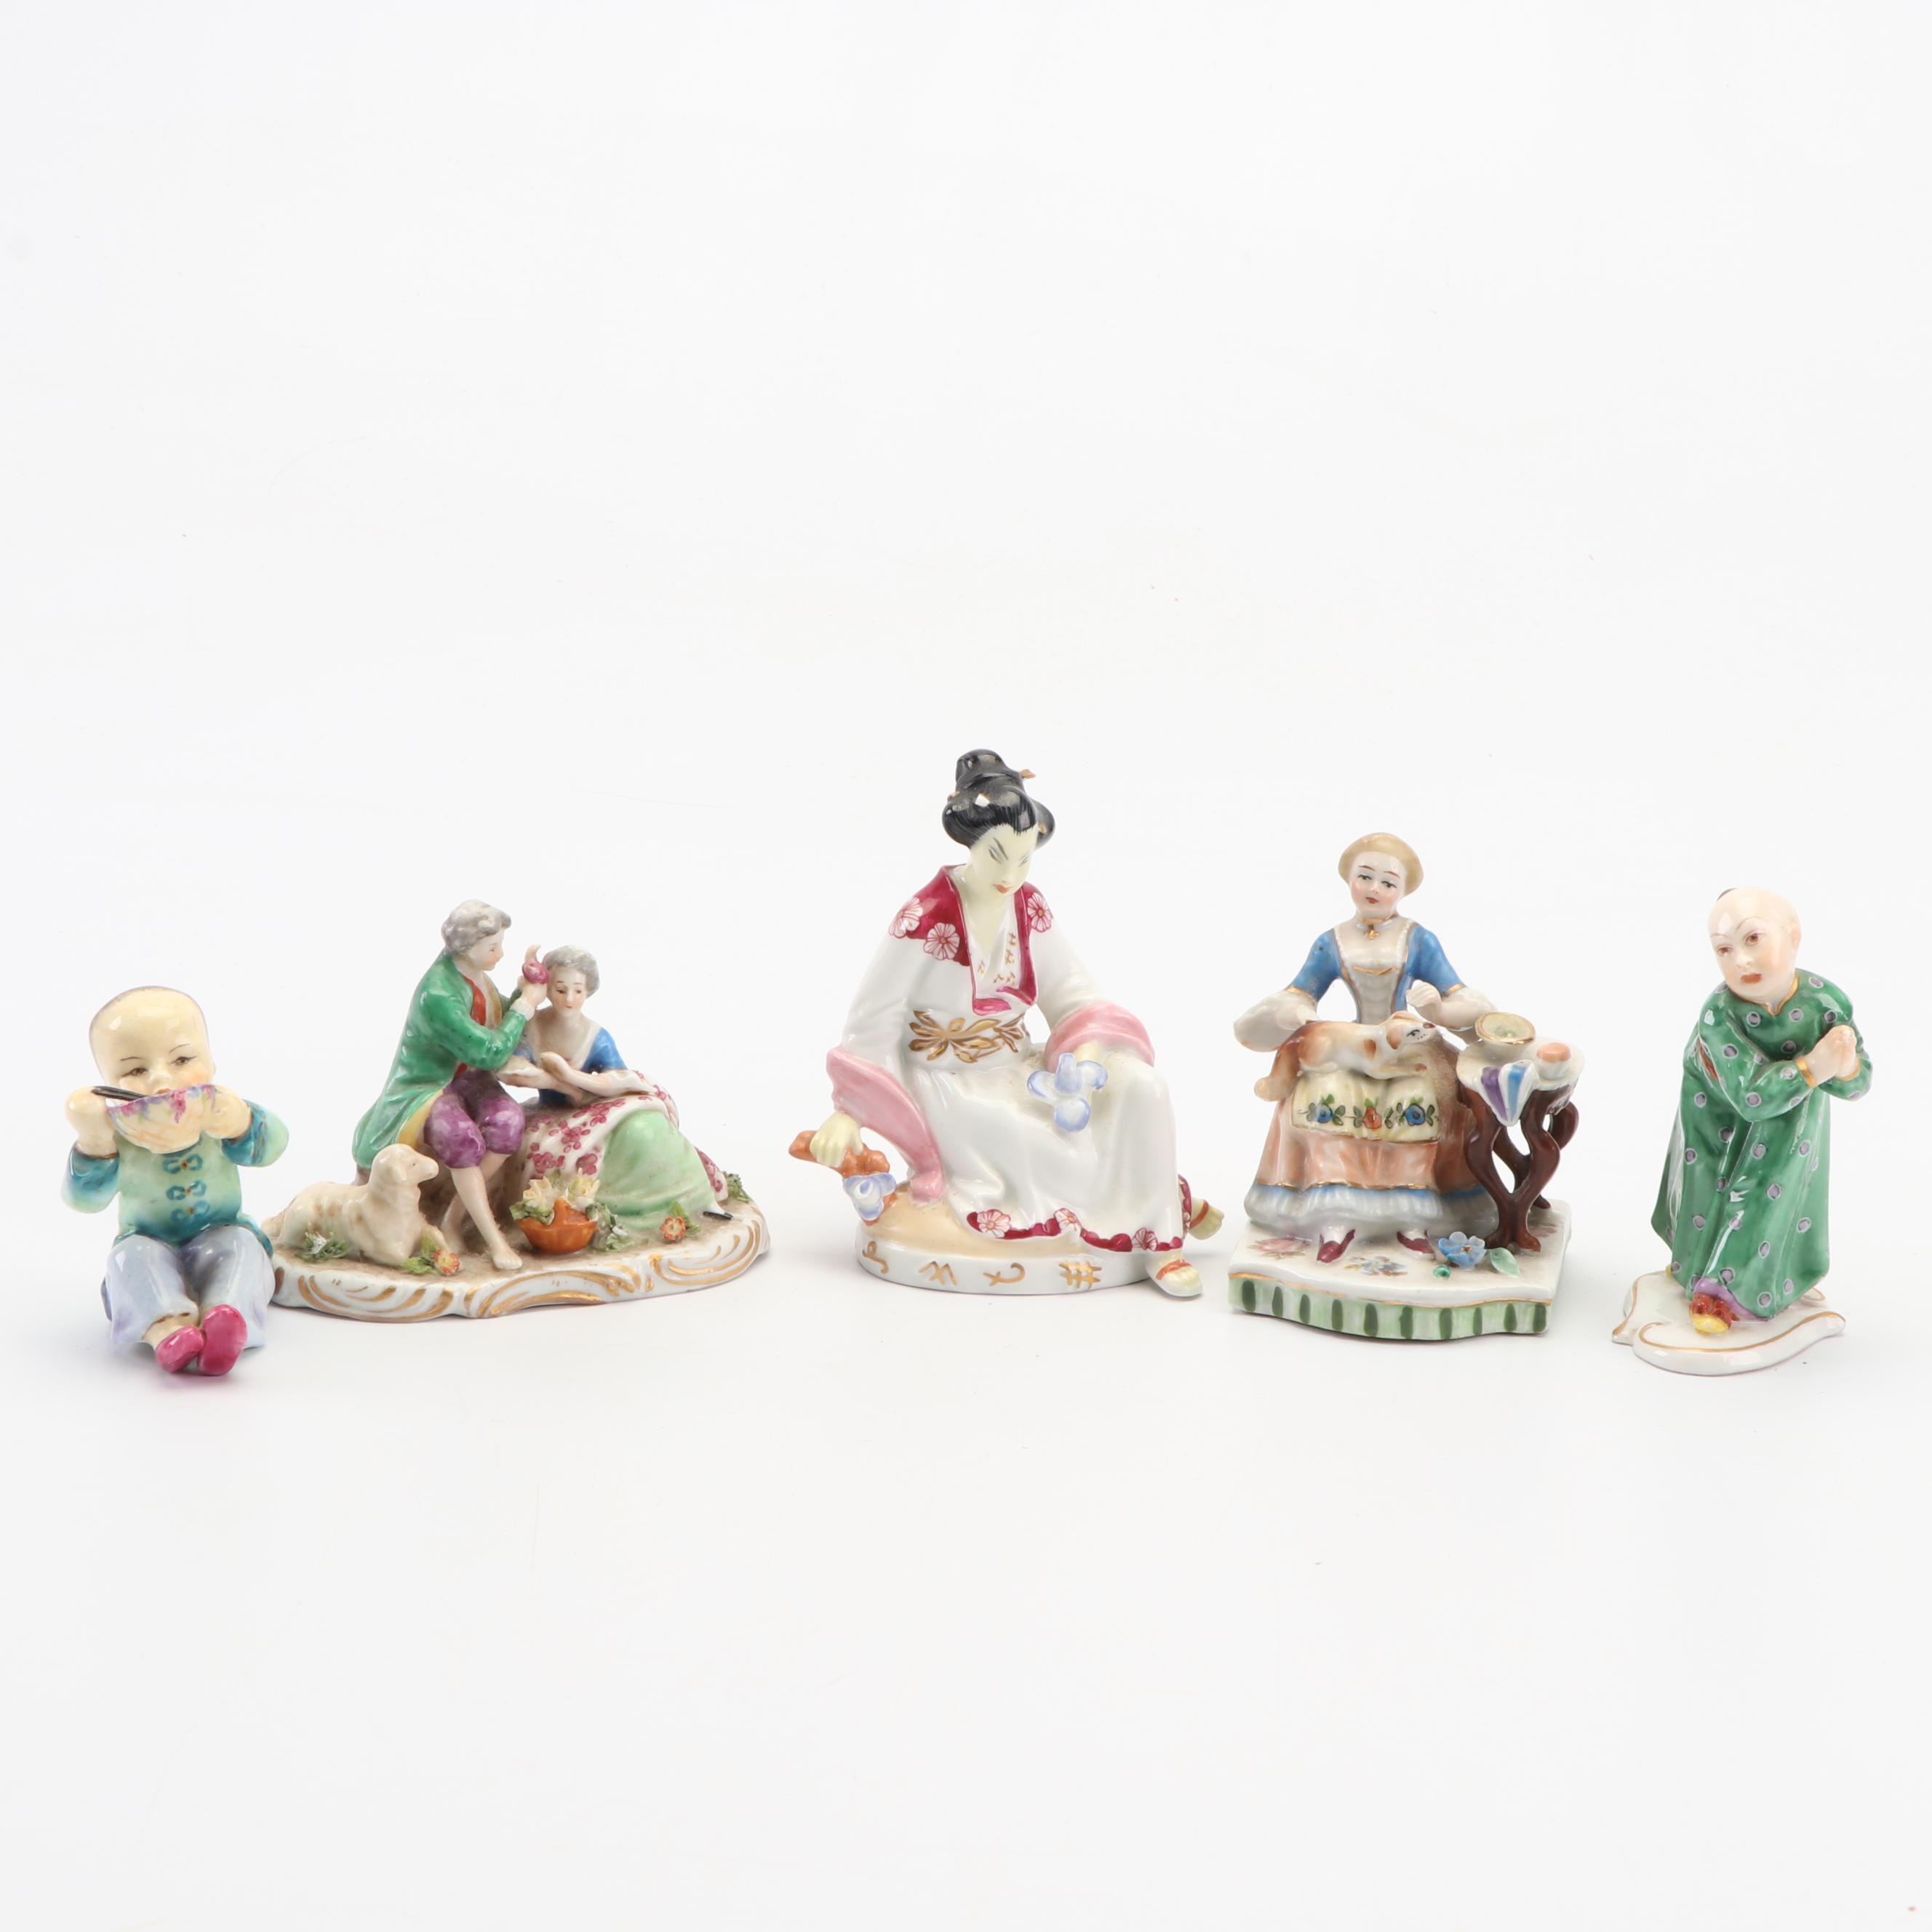 Collection of Porcelain Figurines Including Royal Worcester